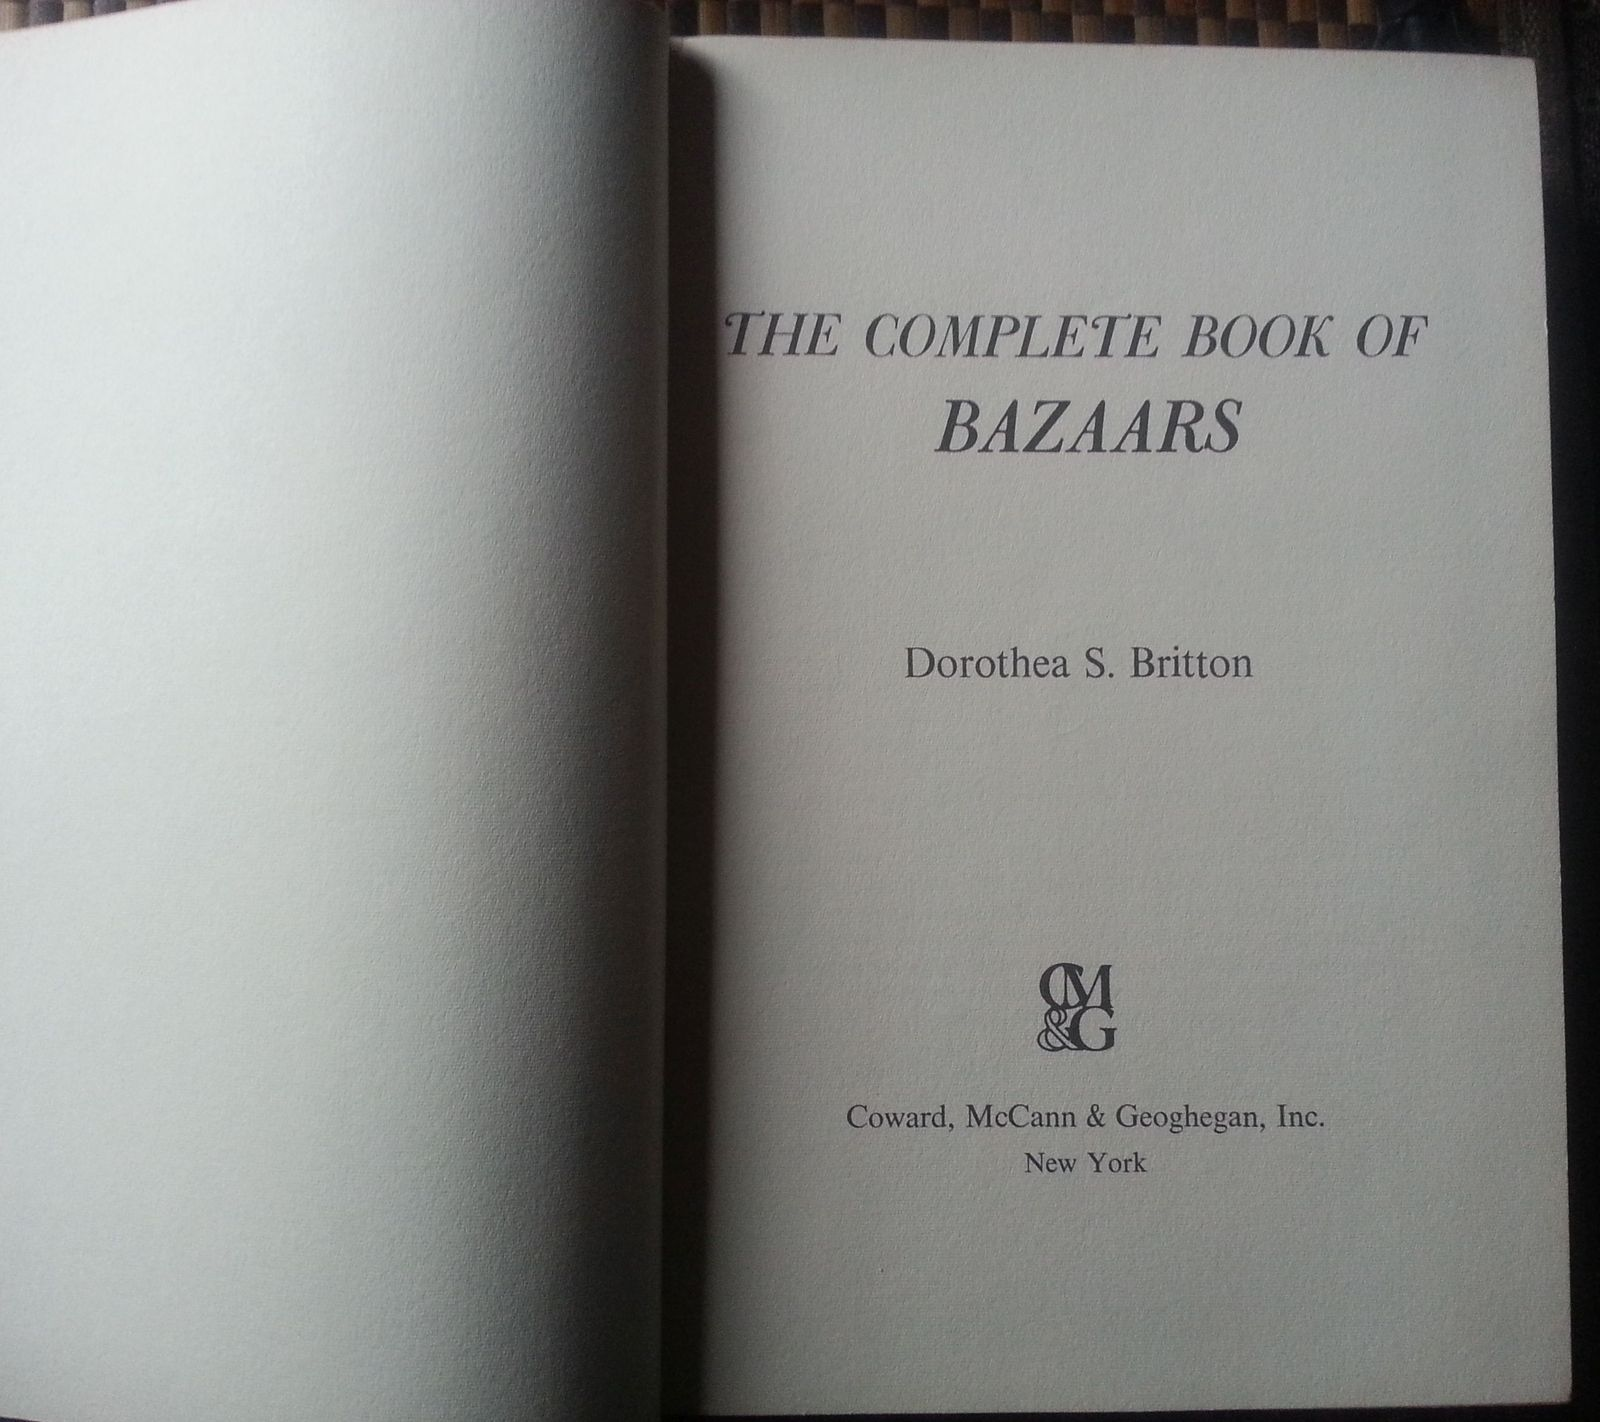 The Complete Book of Bazaars by Dorothea S. Britton 1973 HB